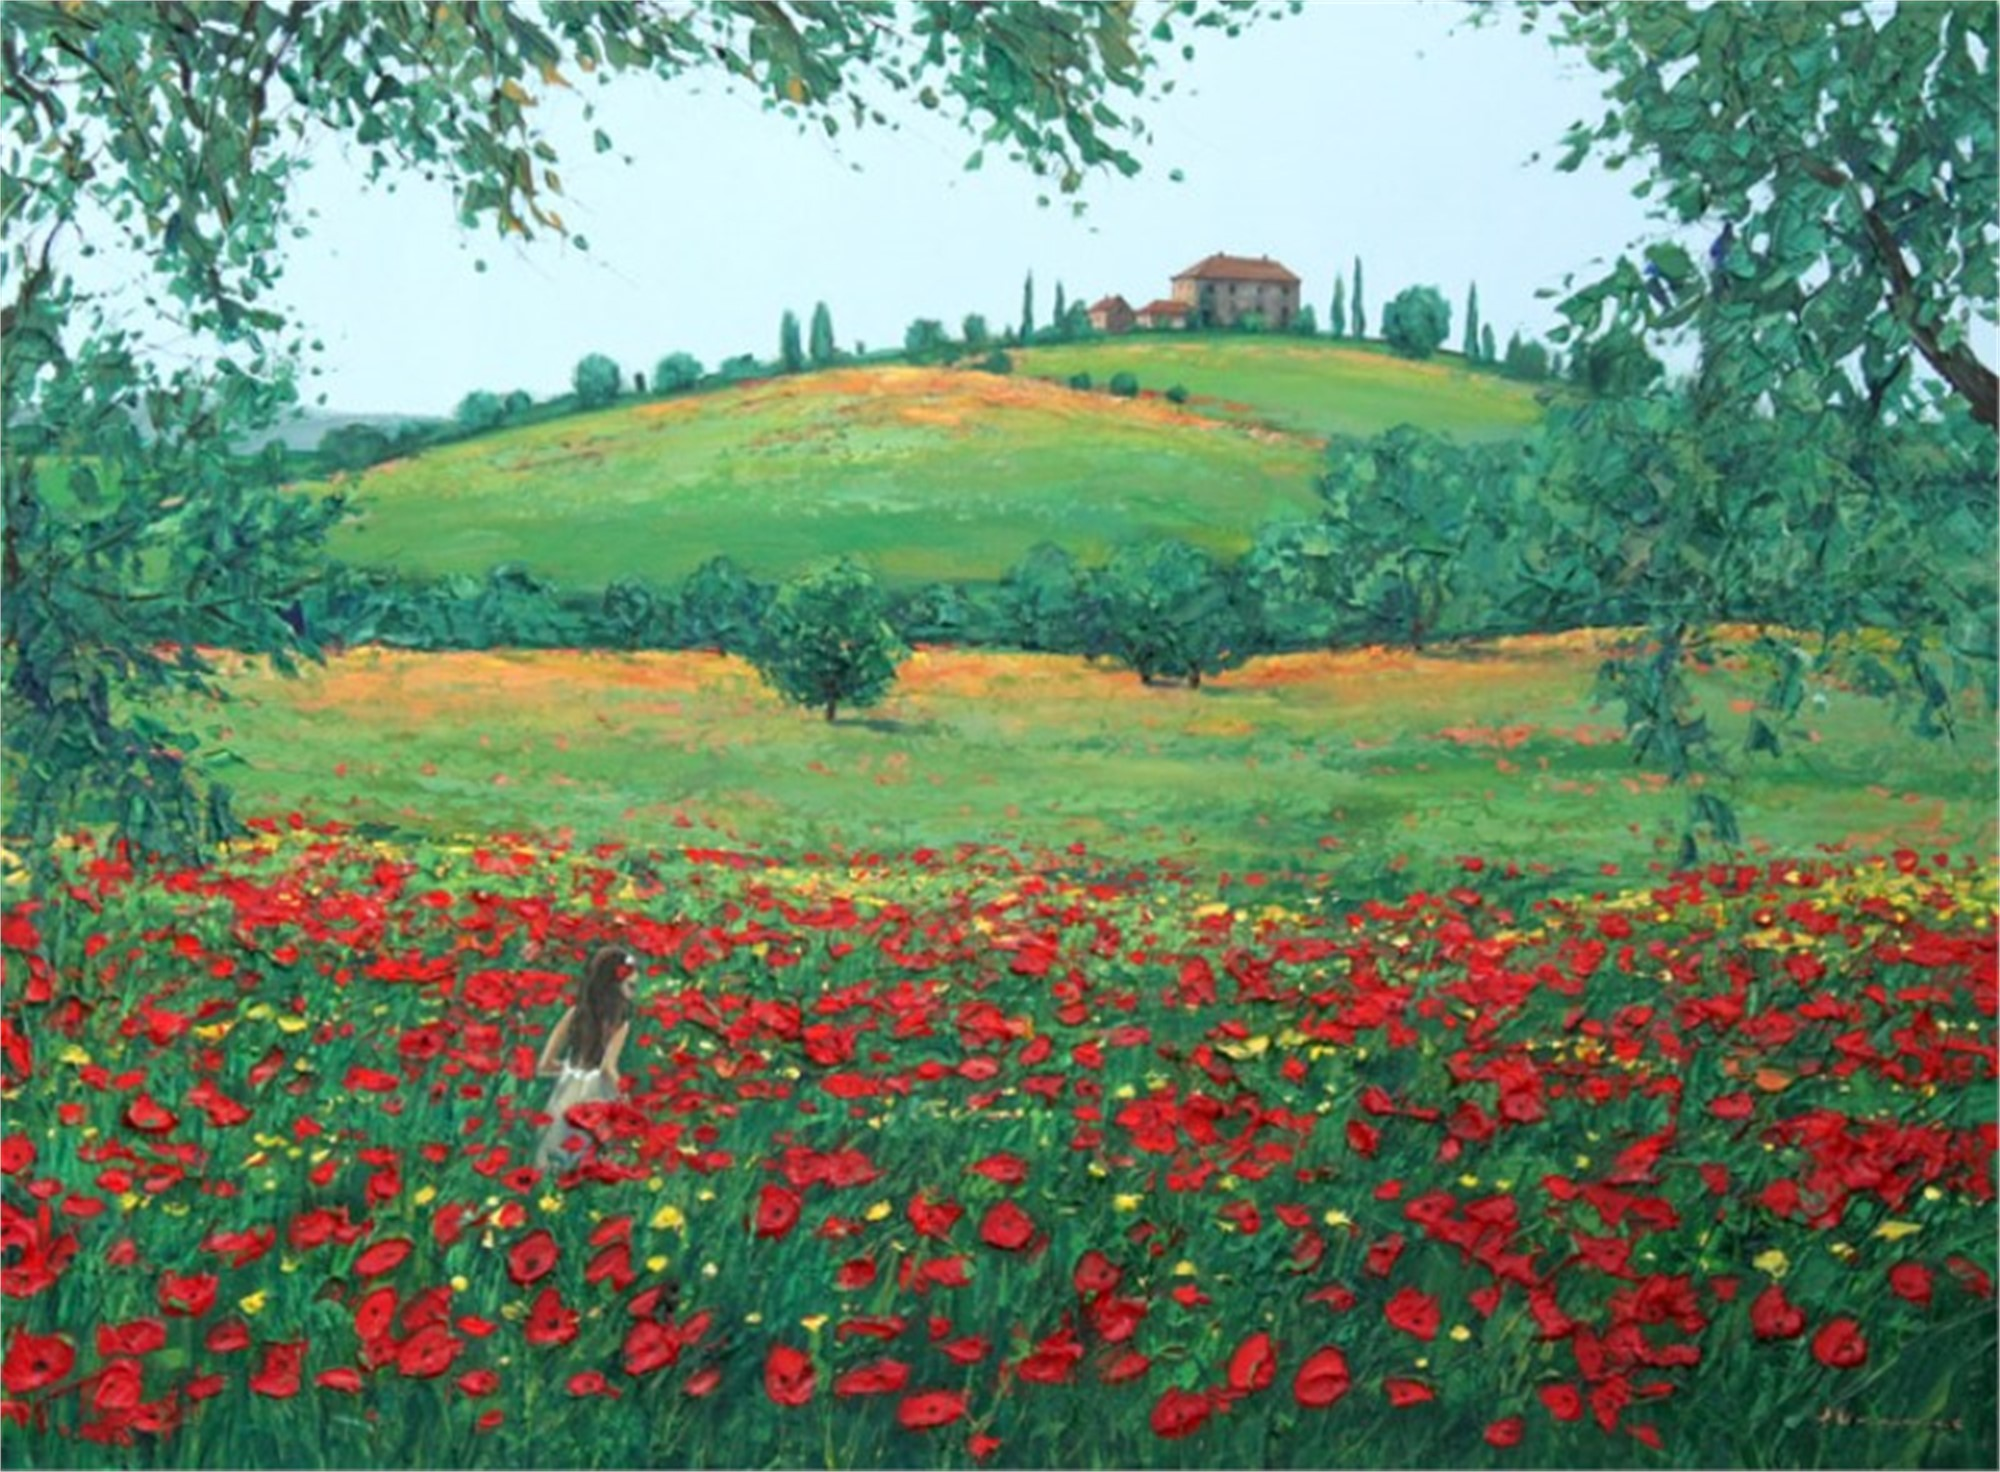 Wading through the Poppies by Jennifer Vranes